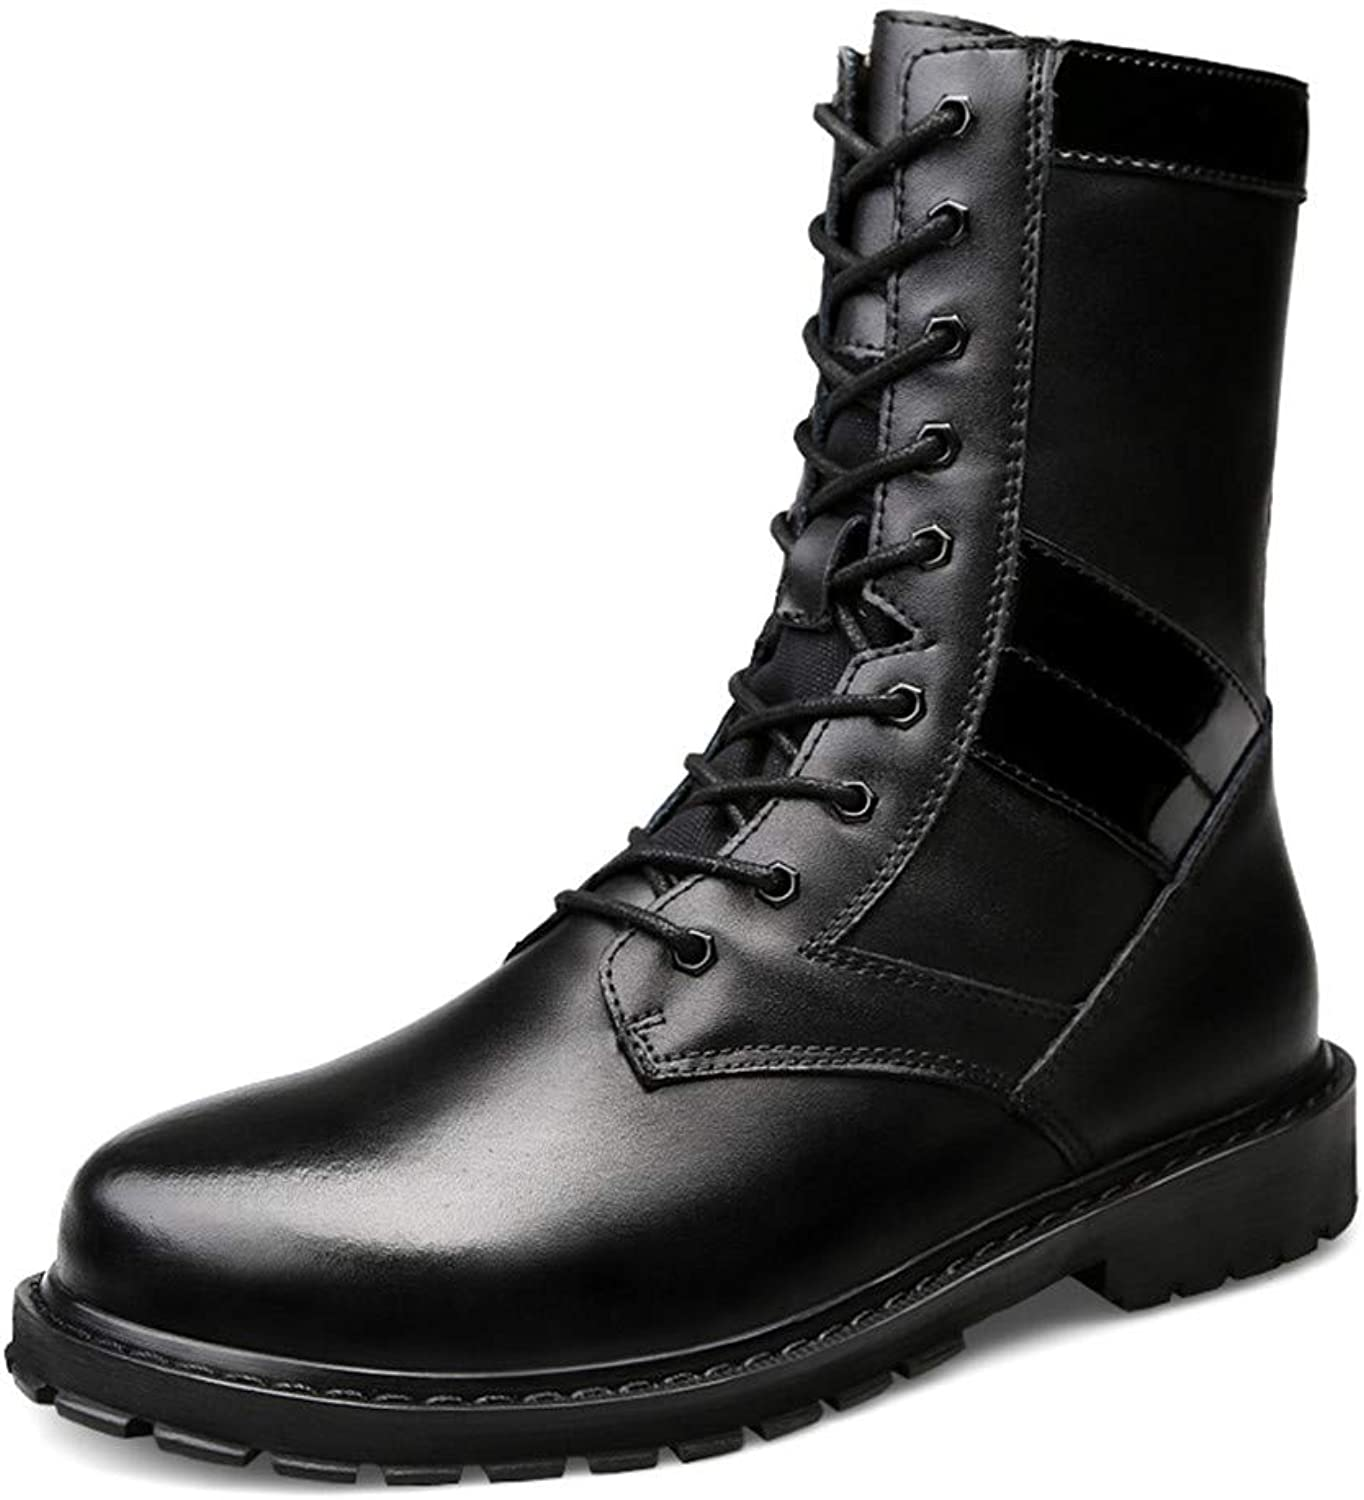 JUJIANFU-shoes Men's Simple Fashion Middle Boots Casual High-top Outsole Imitation Army Boots(Warm Velvet Optional)